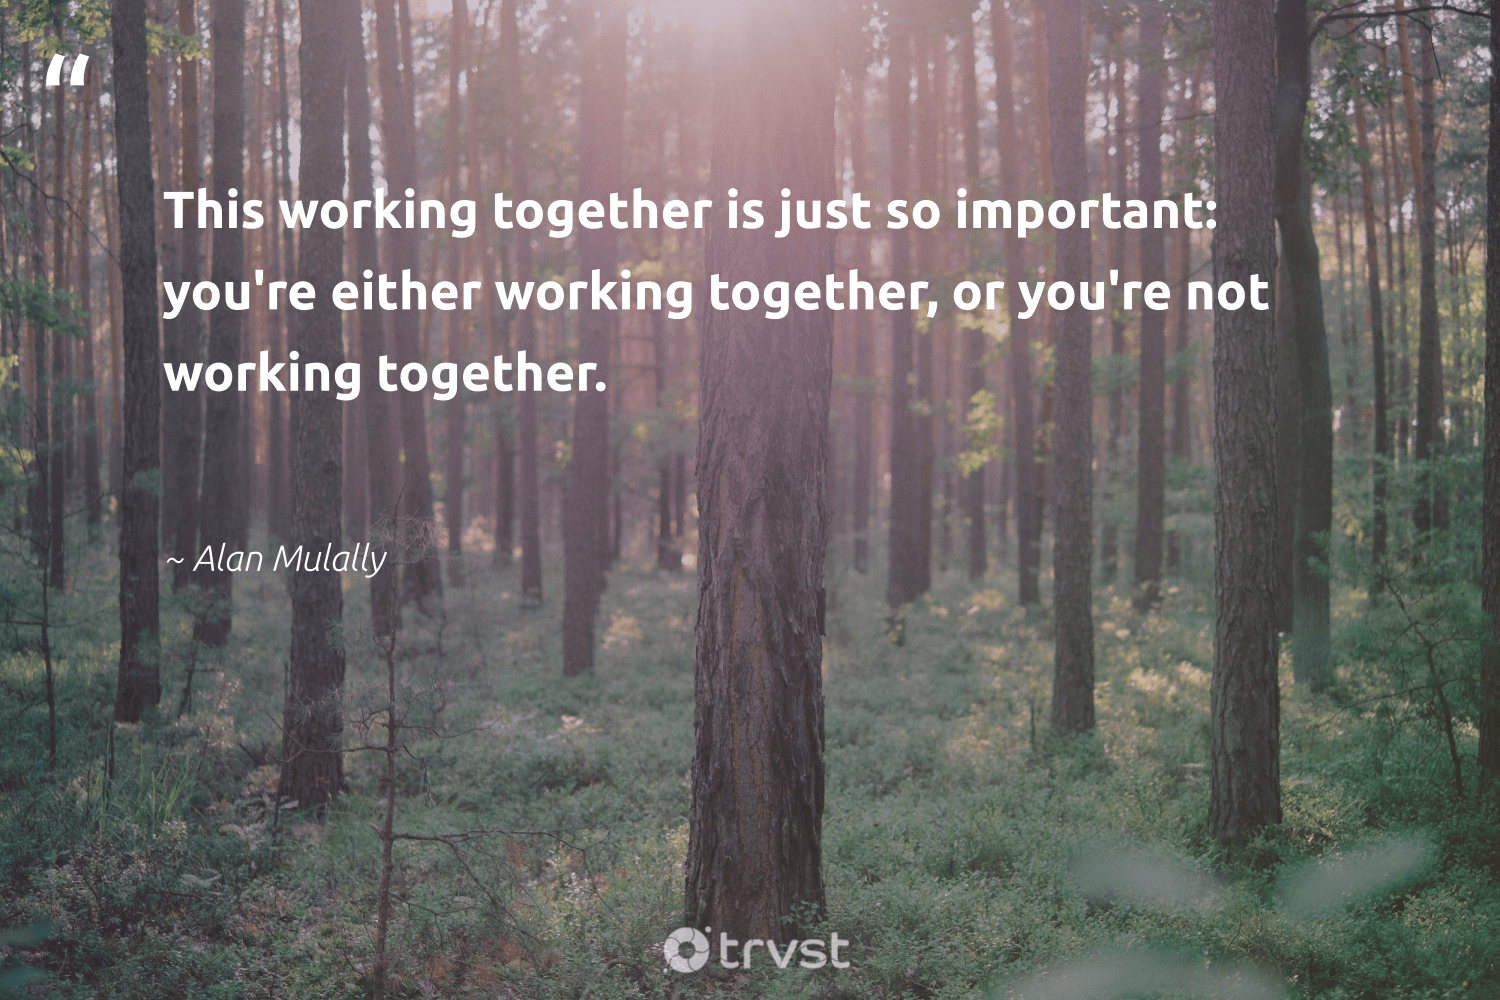 """This working together is just so important: you're either working together, or you're not working together.""  - Alan Mulally #trvst #quotes #workingtogether #futureofwork #collectiveaction #softskills #bethechange #nevergiveup #socialimpact #begreat #changetheworld #takeaction"